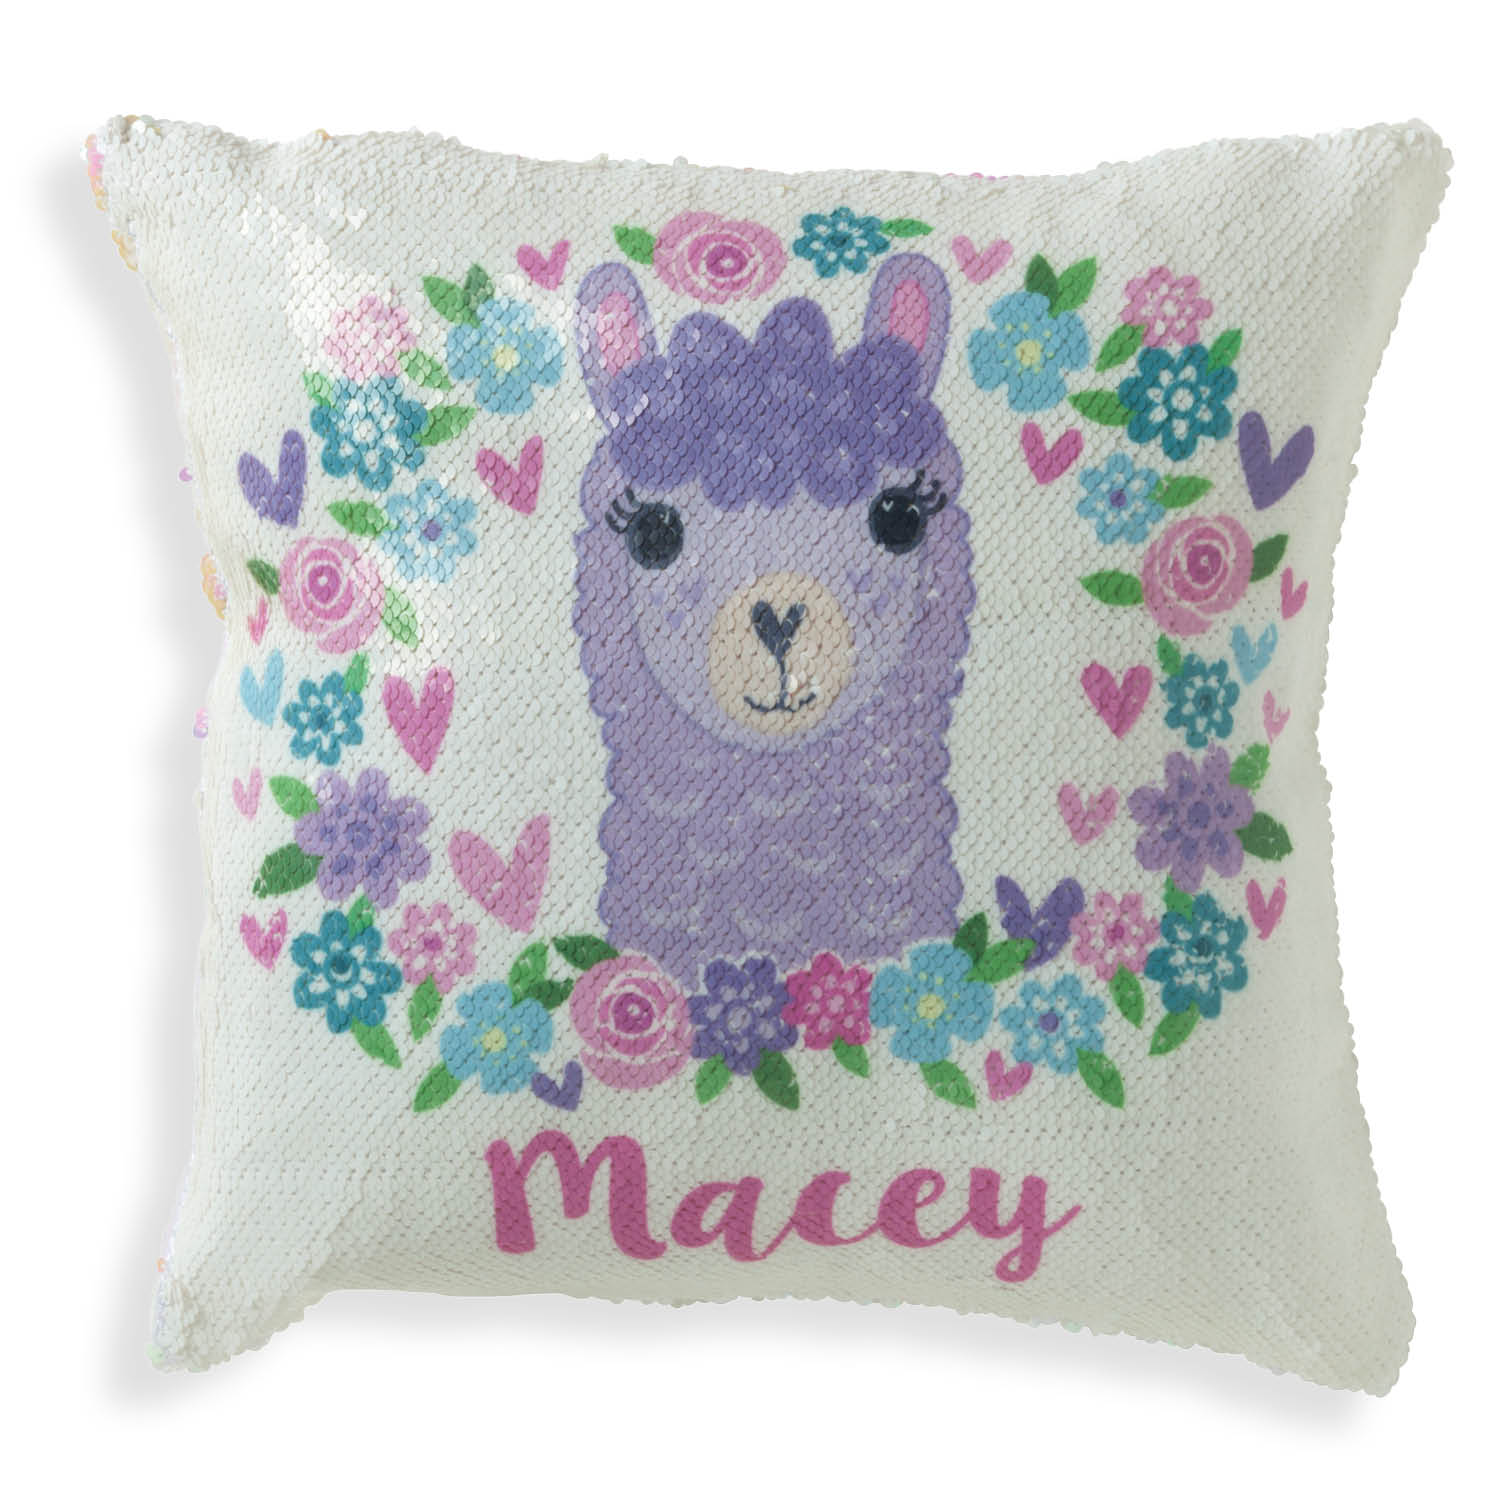 Personalized Reversible Pink Sequin Llama Pillow - 16x16